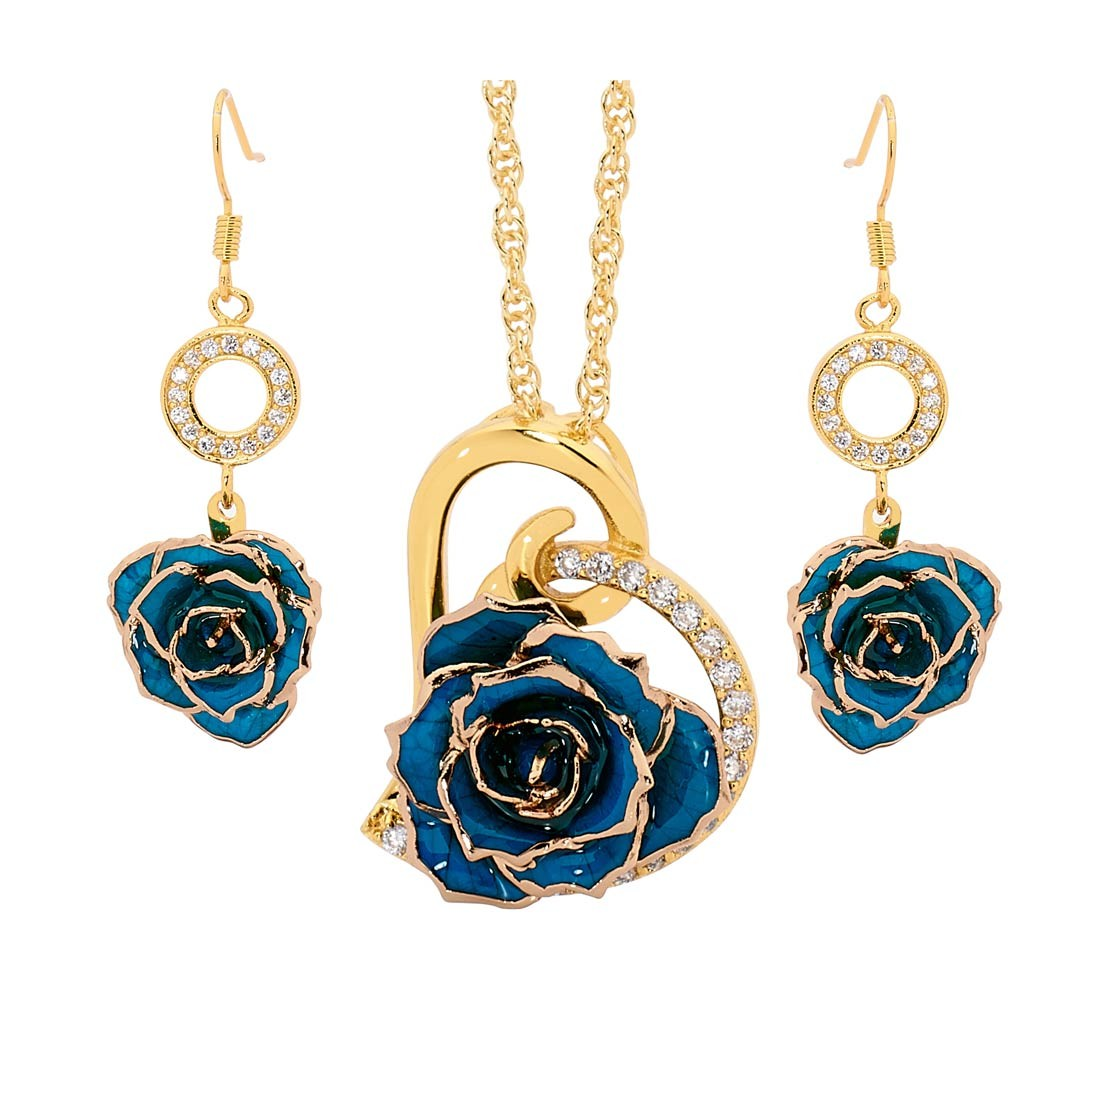 Gold Dipped Rose & Blue Matched Jewelry Set in Heart Theme